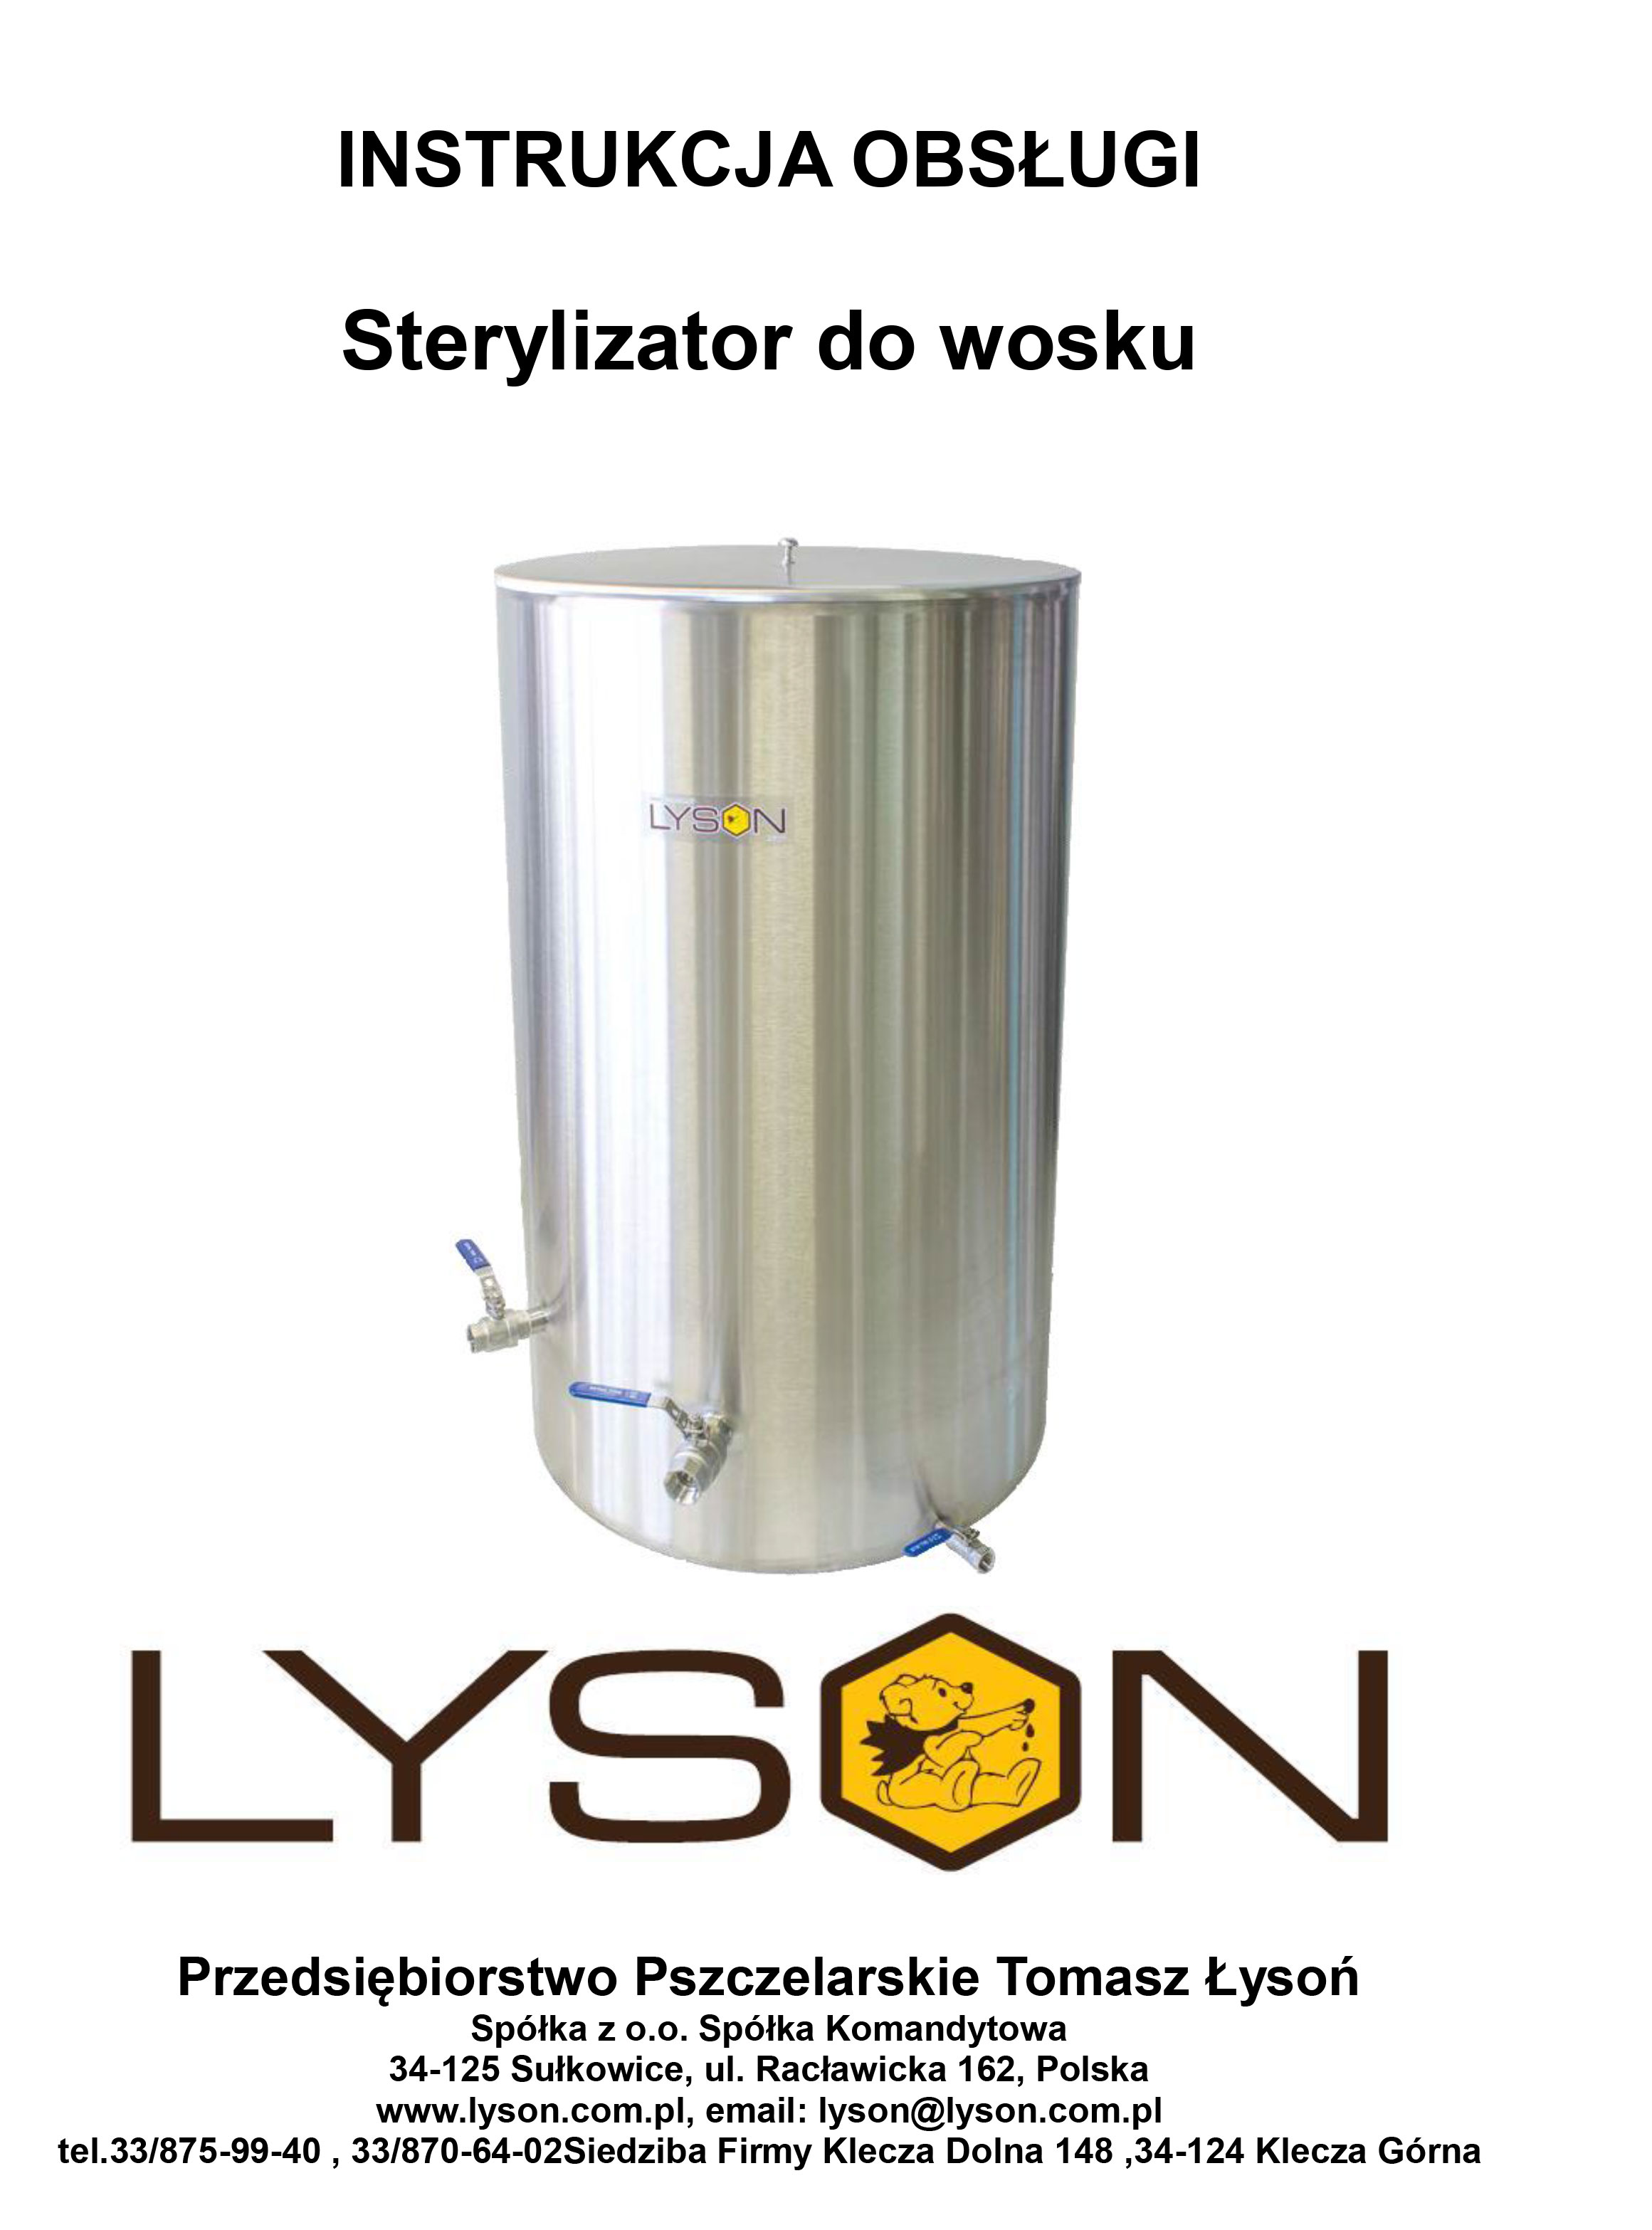 Sterylizator do wosku